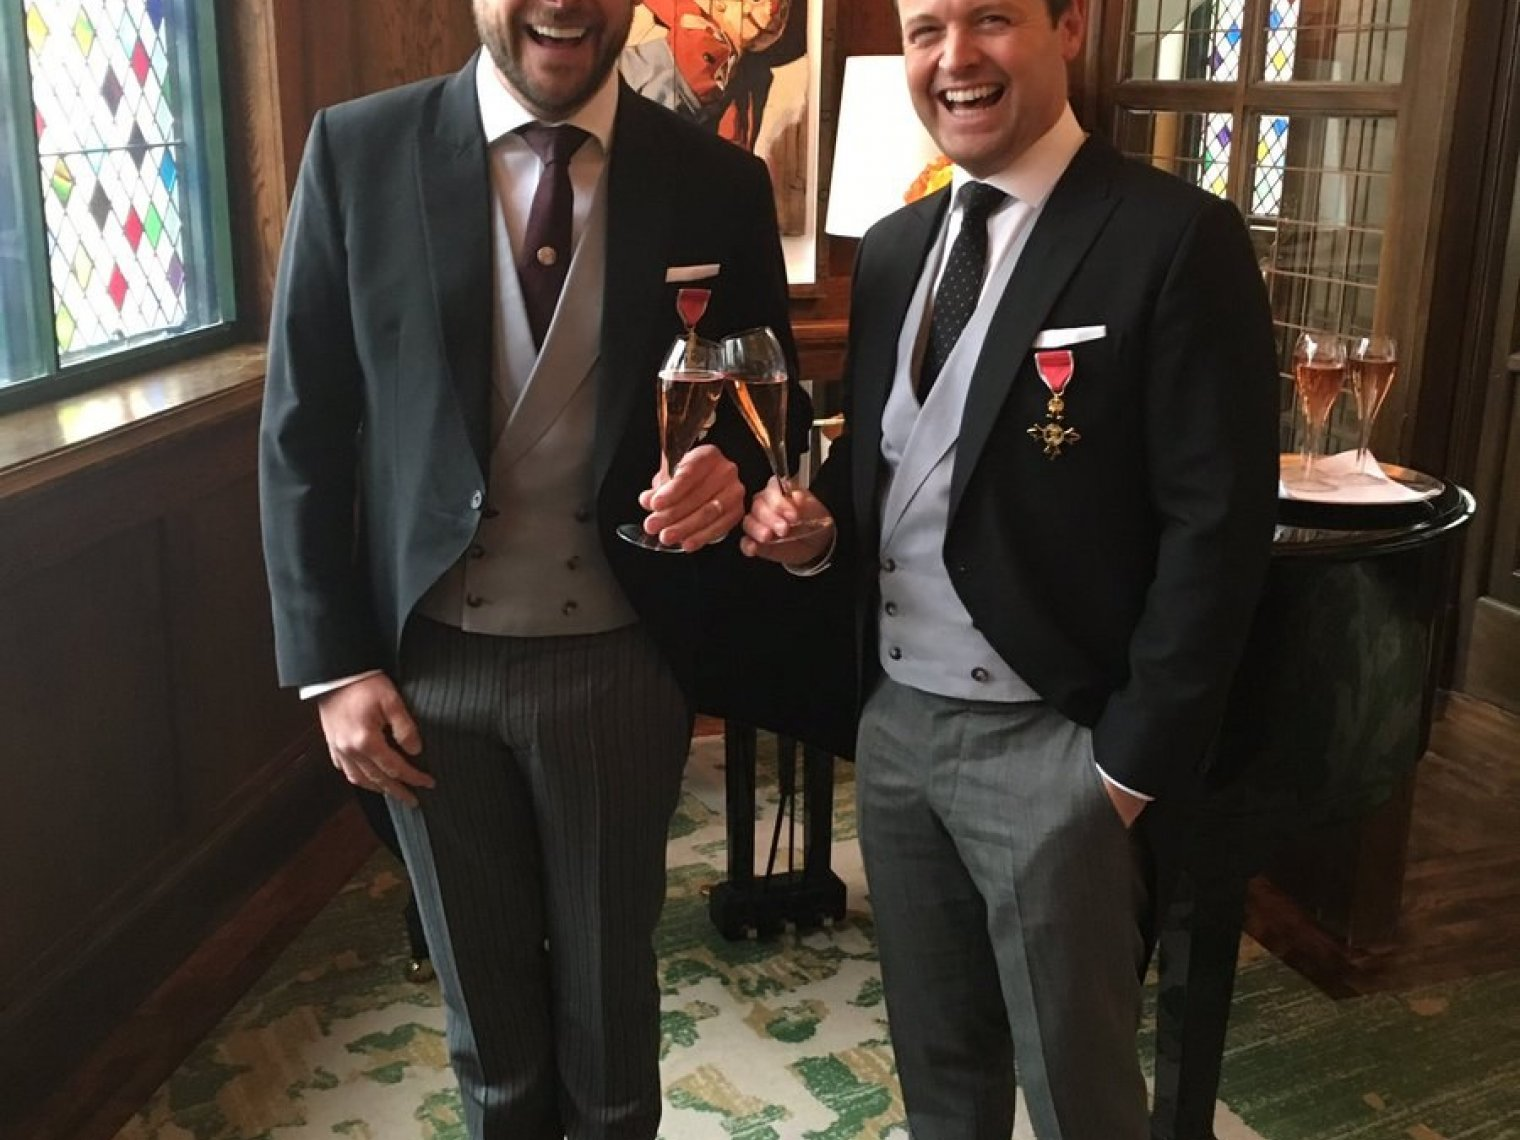 'Chuffed to bits!' Ant & Dec collect their OBEs